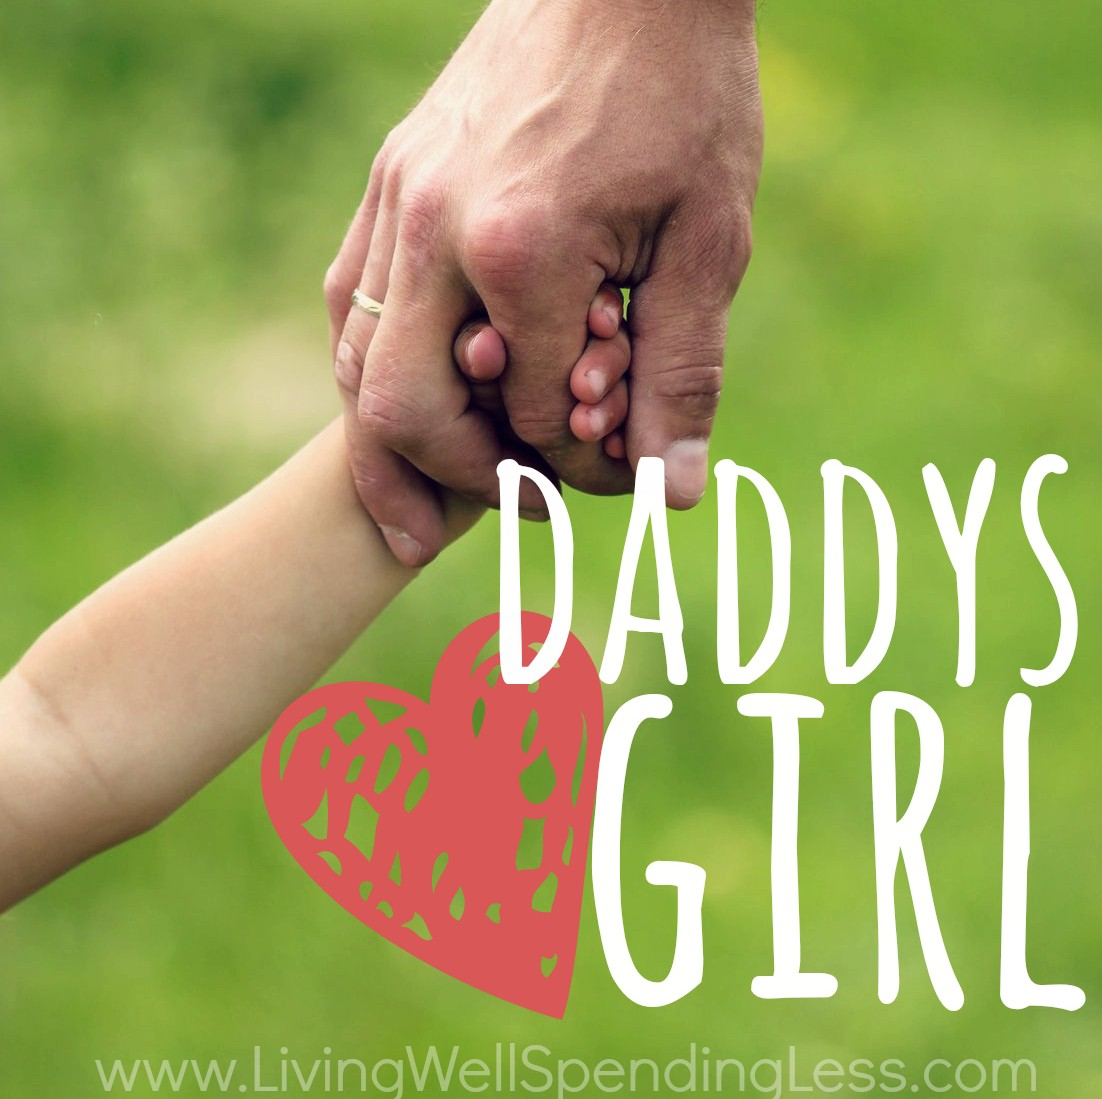 50 Father Daughter Tattoos Every Daddy S Girl Needs: Why Every Girl Needs Her Daddy